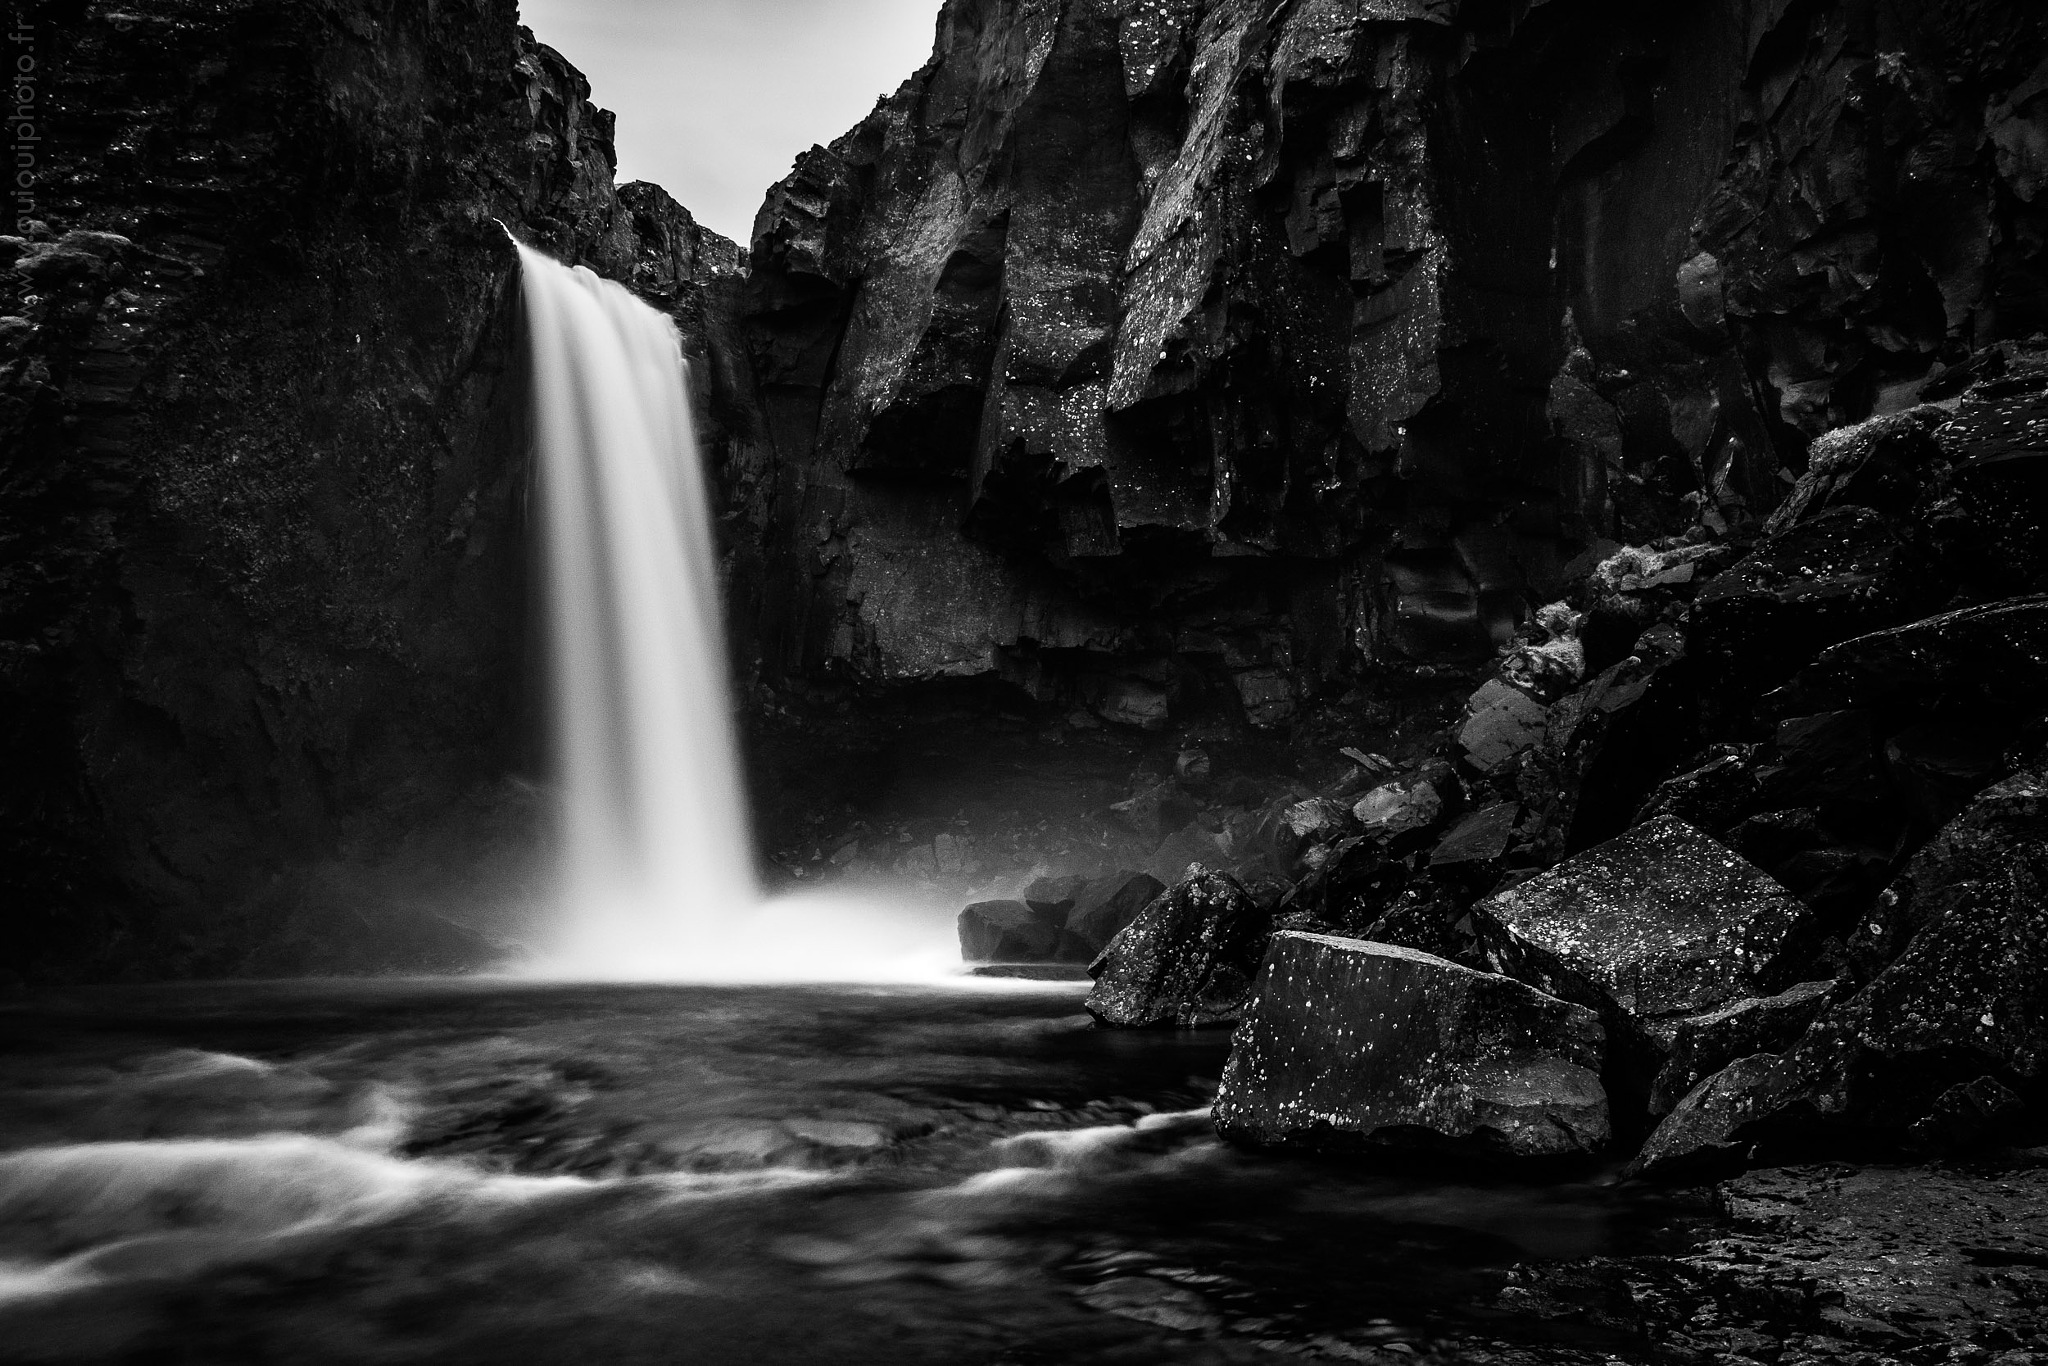 Waterfall in Iceland by Ouioui Ouiouiphoto